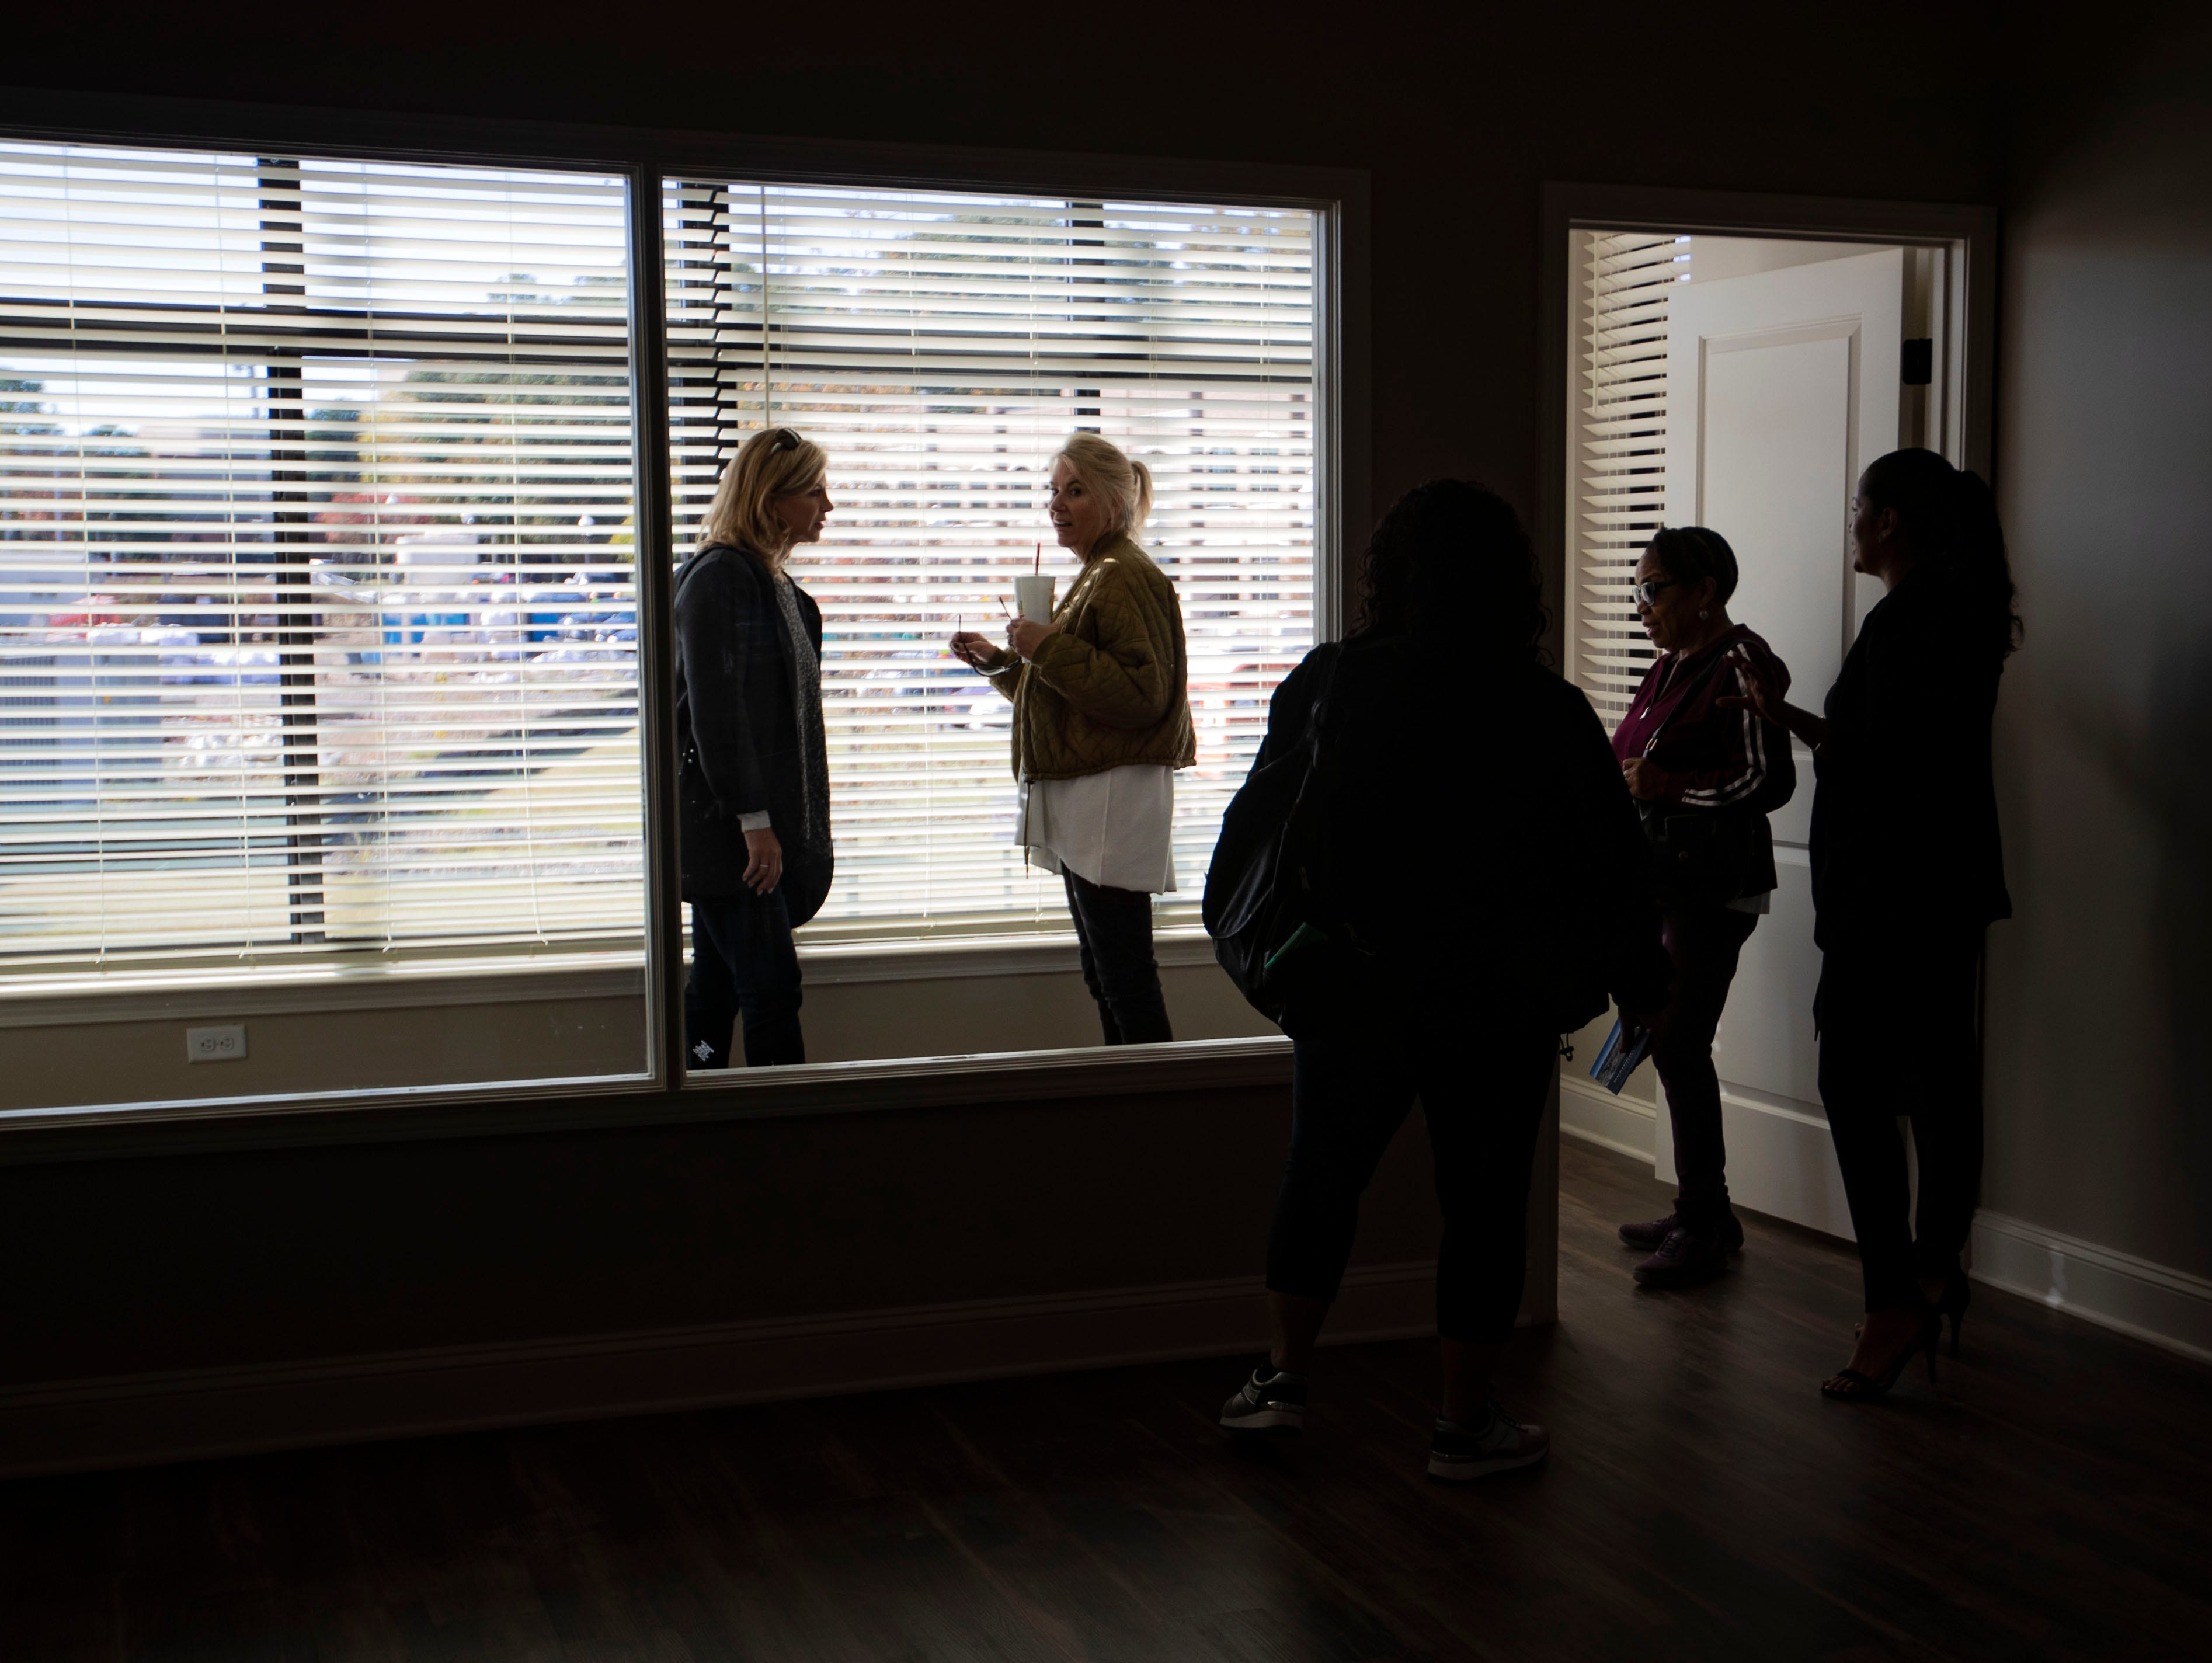 Elizabeth Renteria shows visitors around a two bedroom apartment during Thornwood Development open house in Germantown TN., Saturday  November 3, 2018.